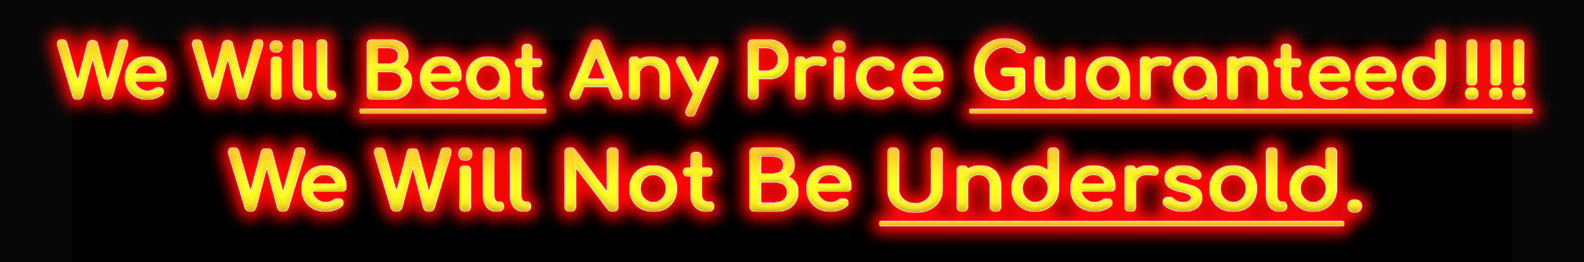 We Will Beat Any Price Guaranteed!!! We Will Not Be Undersold.